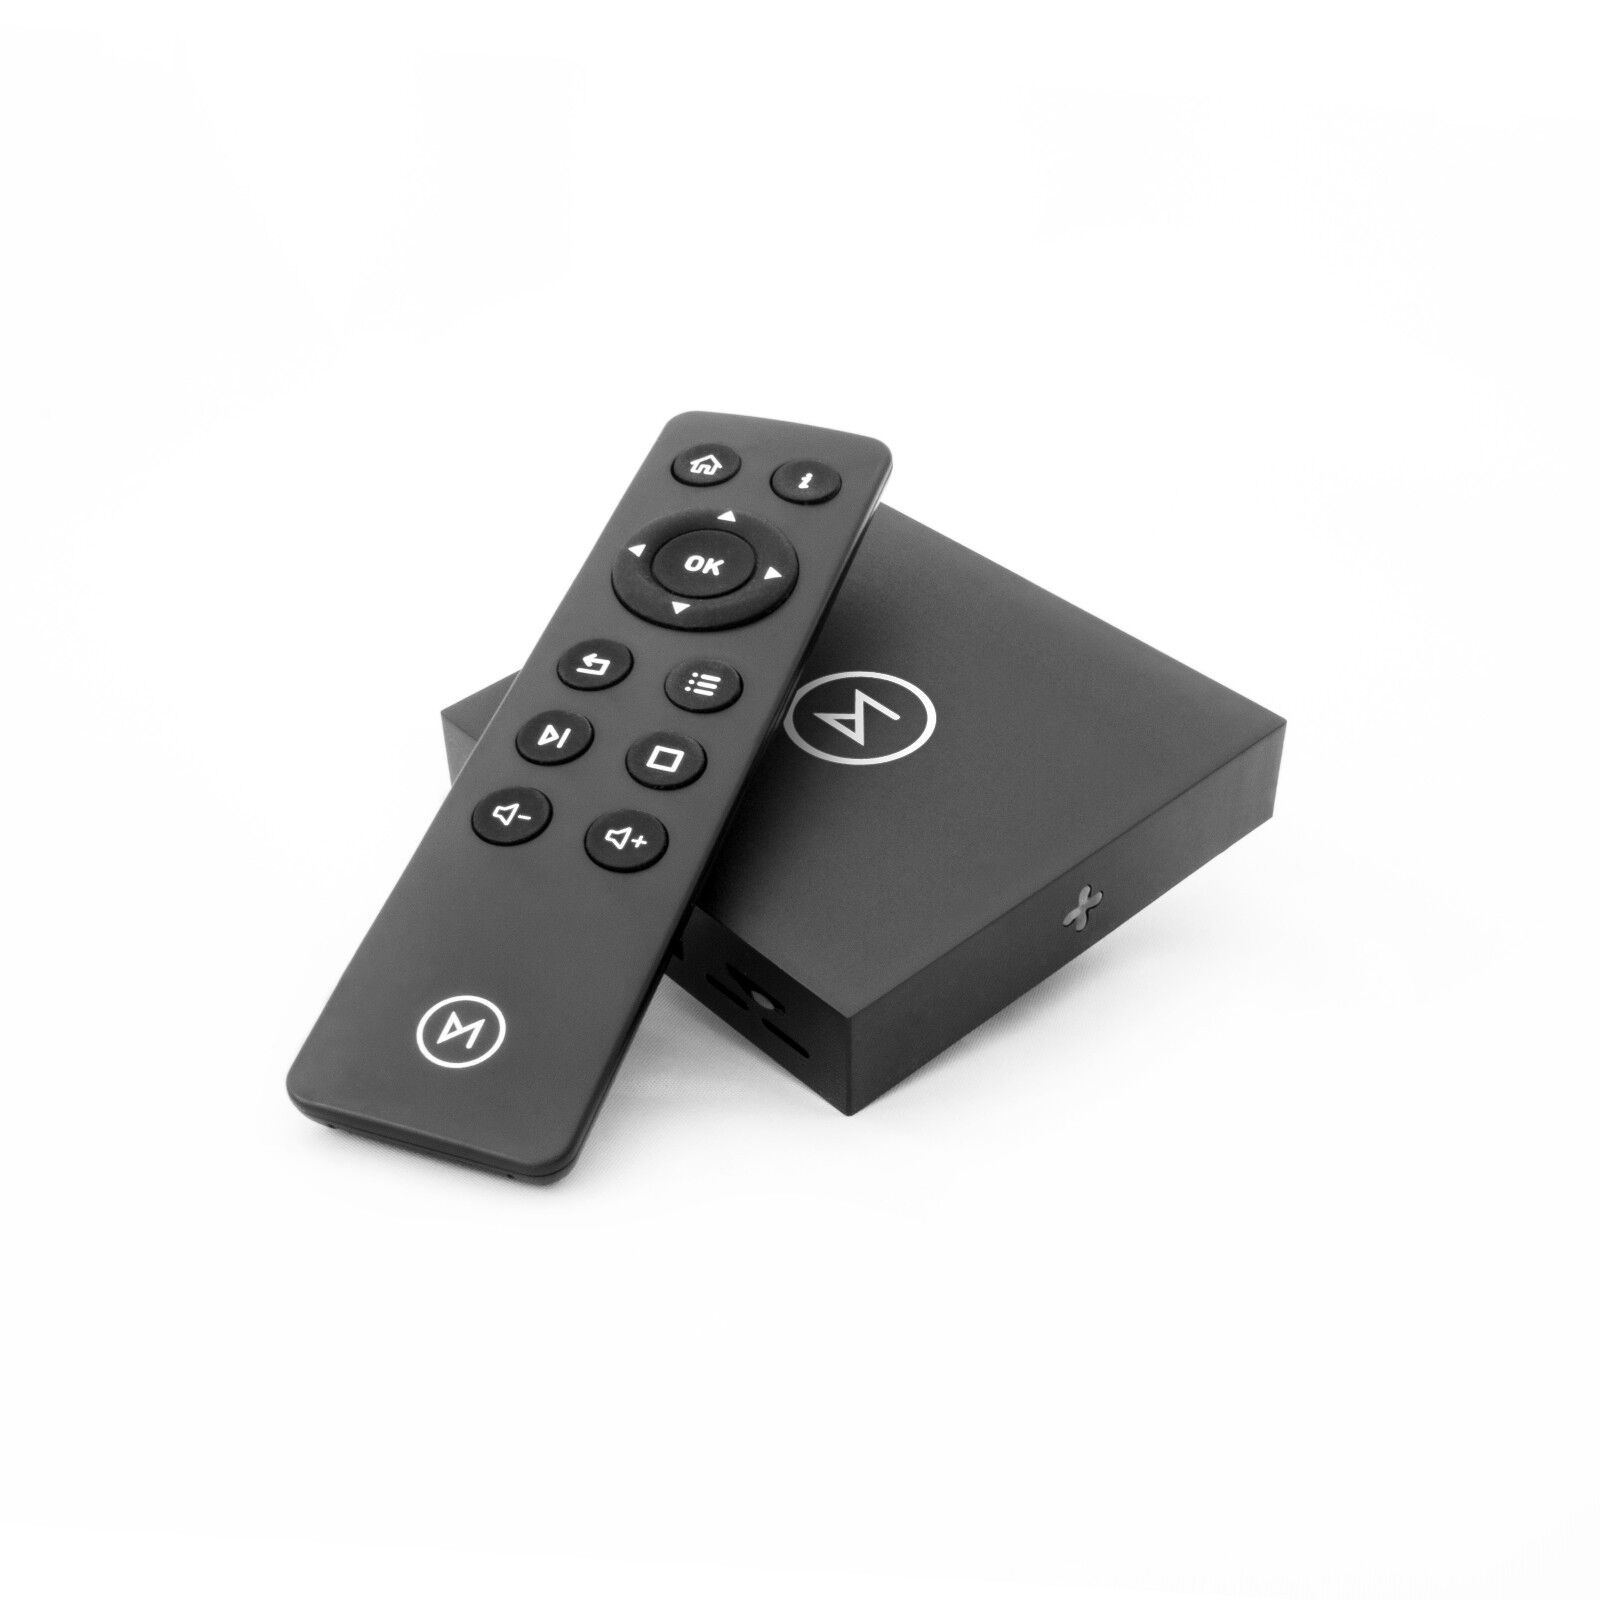 OSMC Vero 4K + streaming box (2018 model)